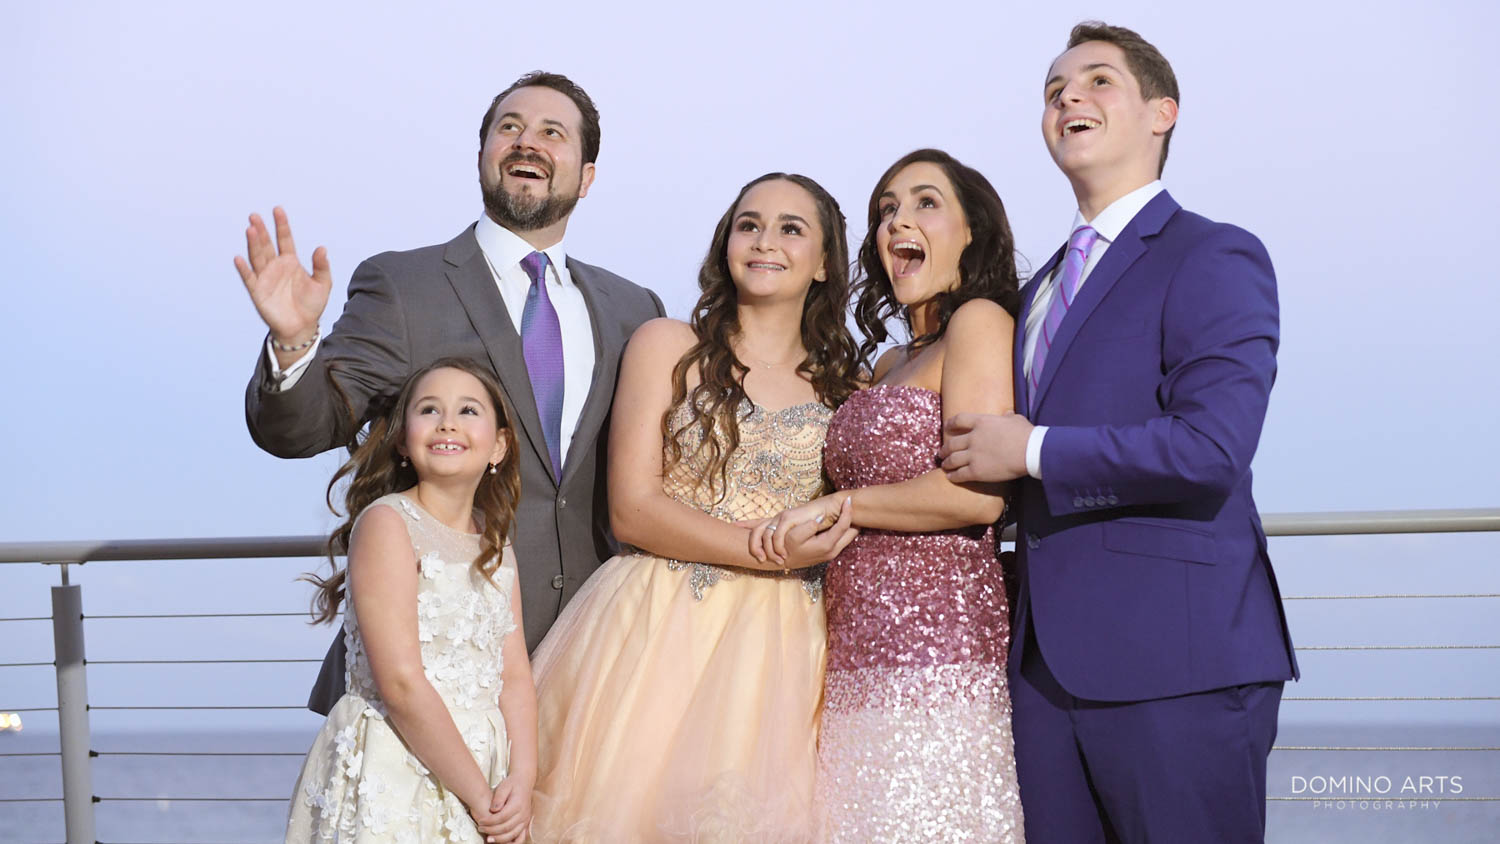 Family pictures on Beach pictures at Marriot Harbor Beach Mitzvah